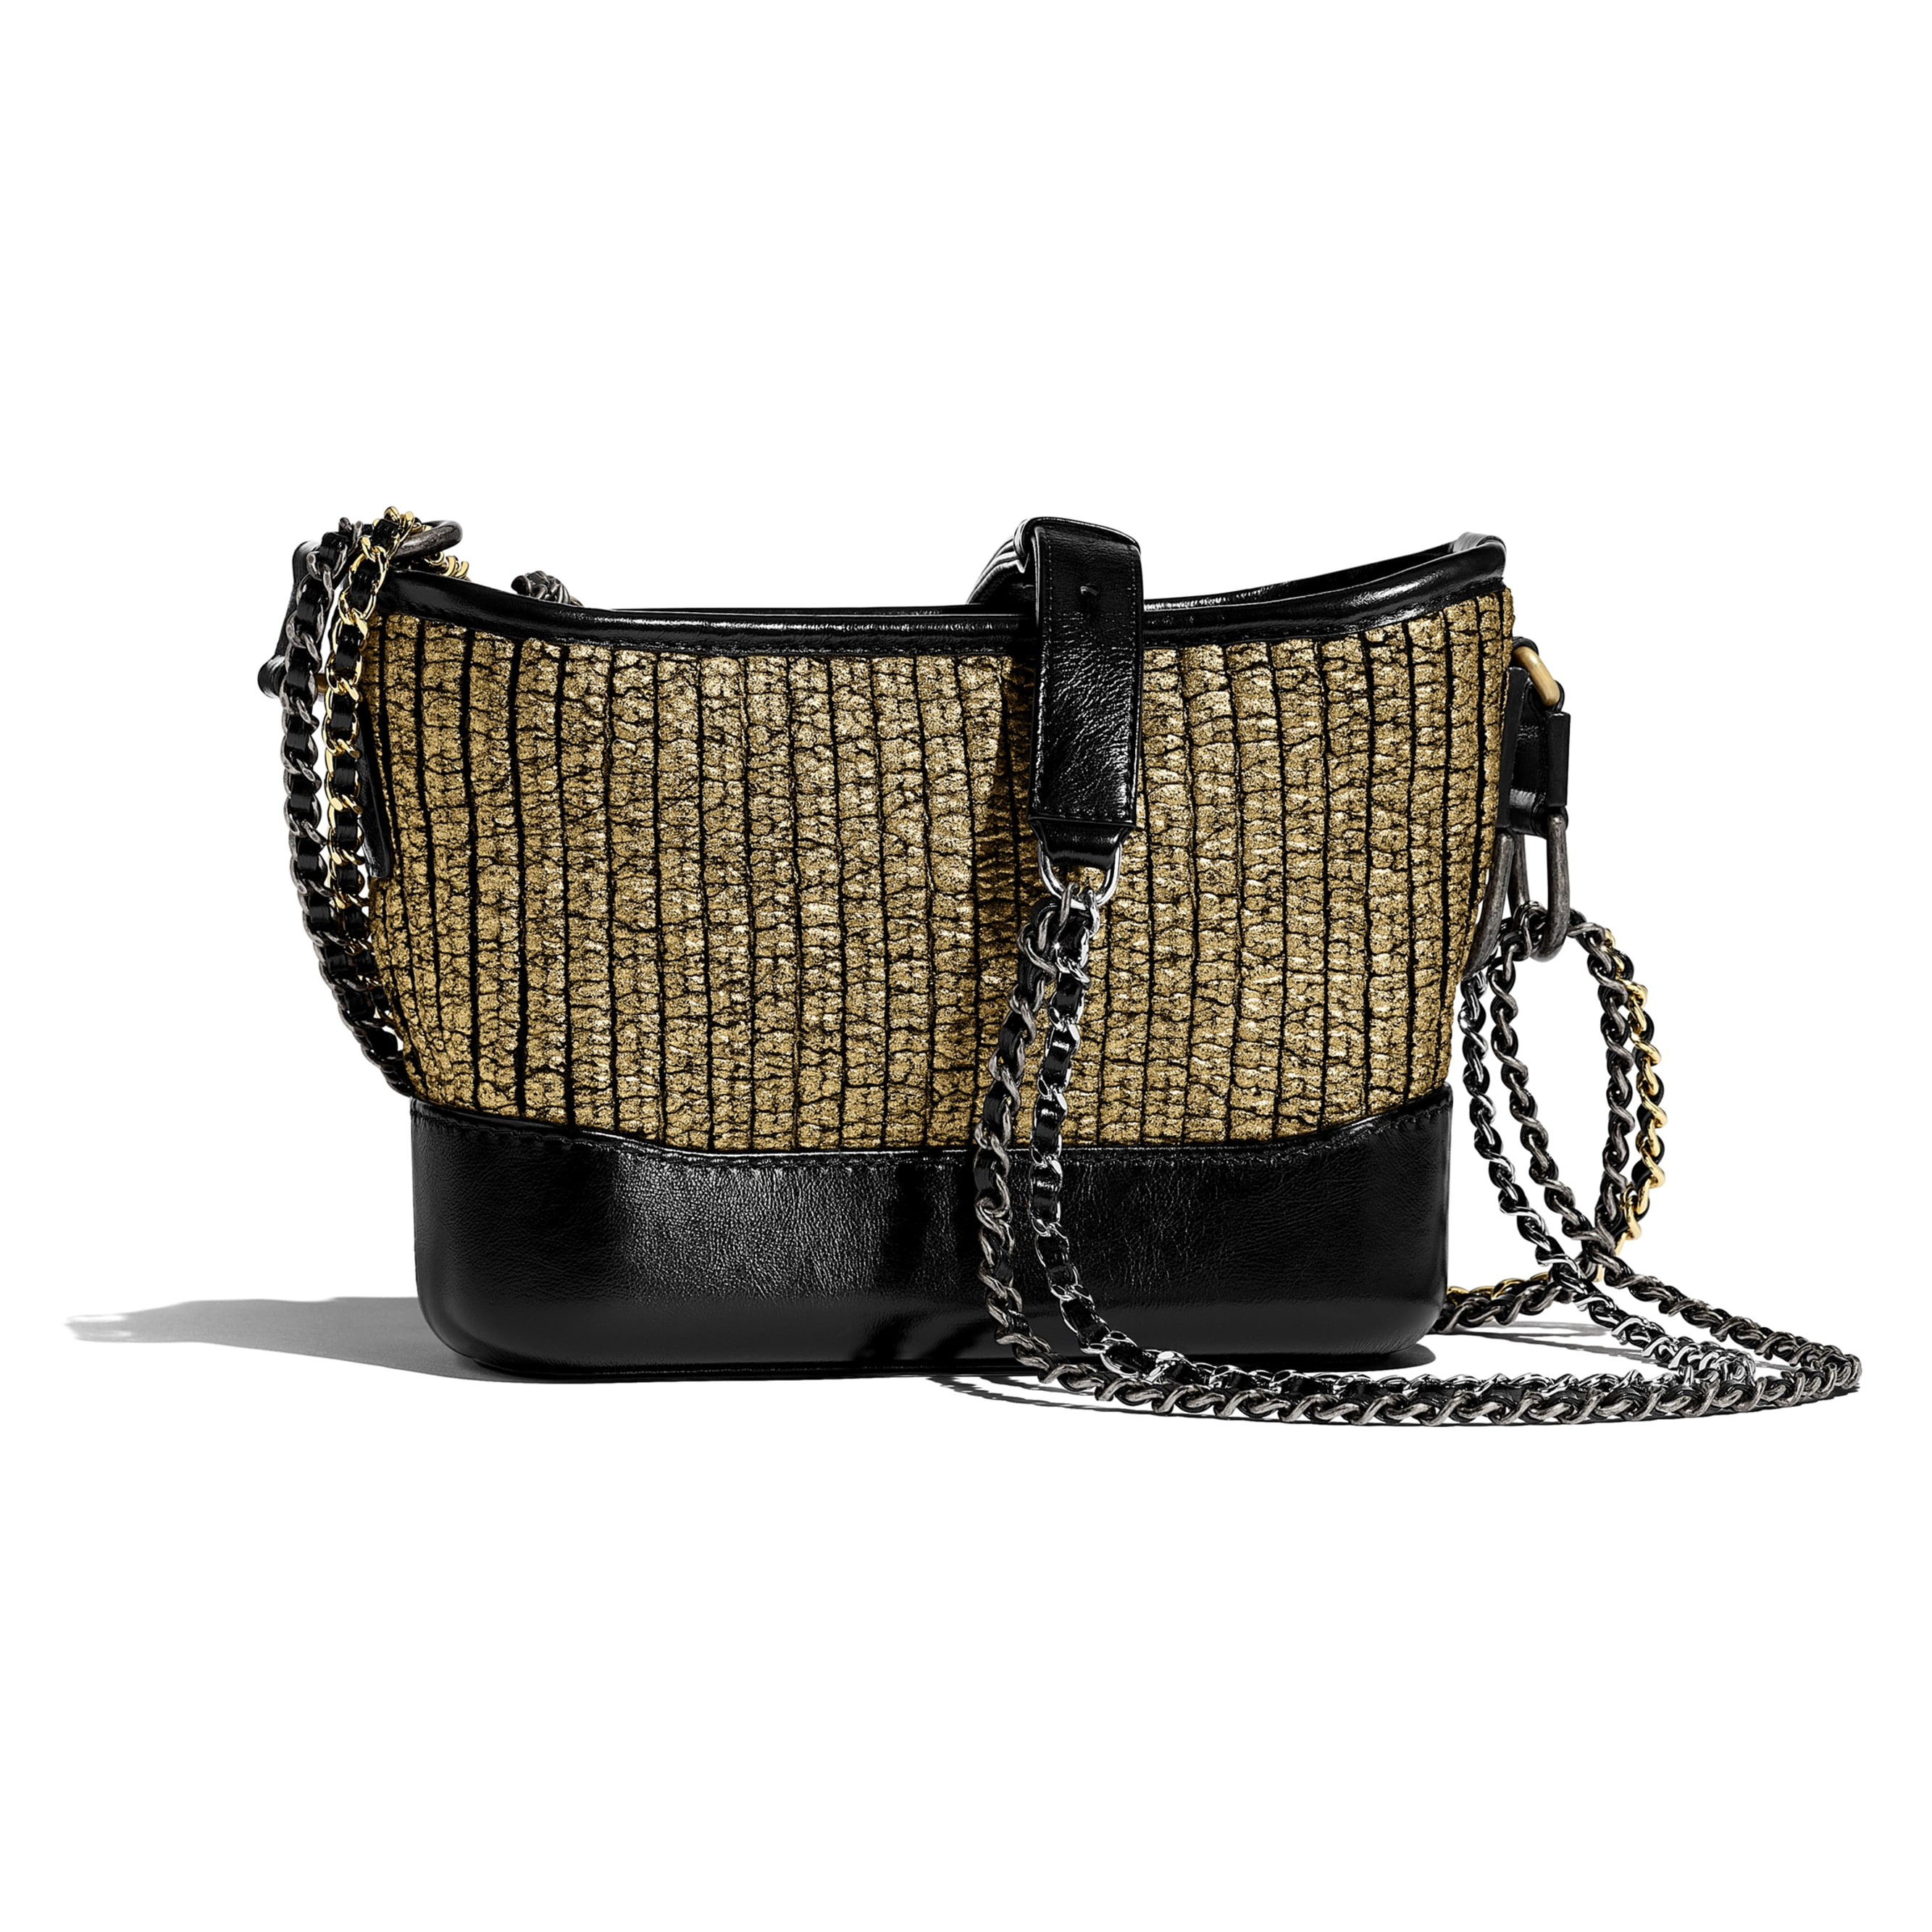 CHANEL'S GABRIELLE Small Hobo Bag - Gold & Black - Tweed, Calfskin, Gold-Tone & Silver-Tone Metal - Alternative view - see standard sized version